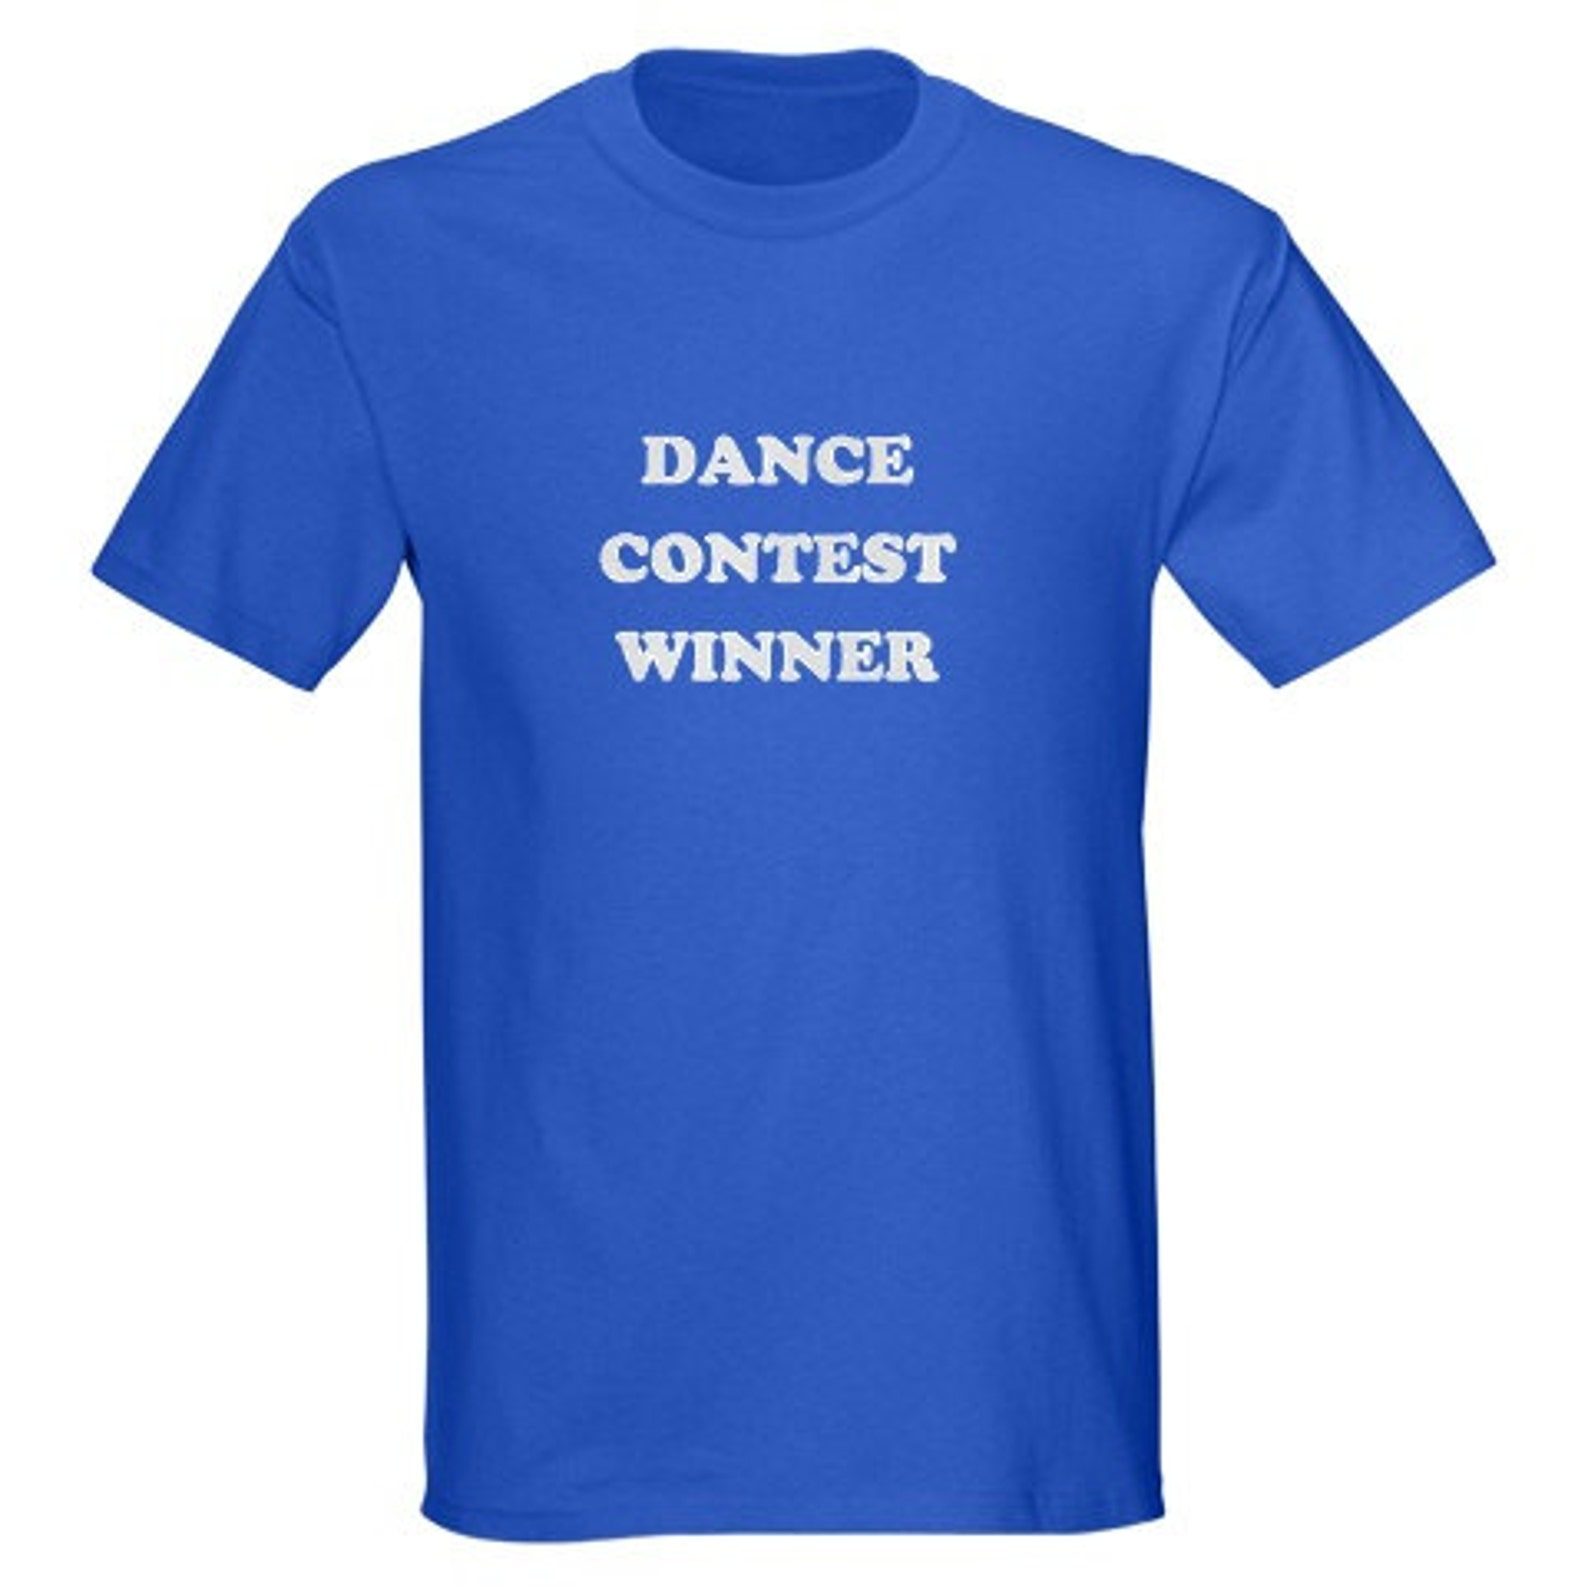 funny tshirt dance contest winner t-shirt ballet swing dancing mens womens kids (also available on crewneck sweatshirts and hood